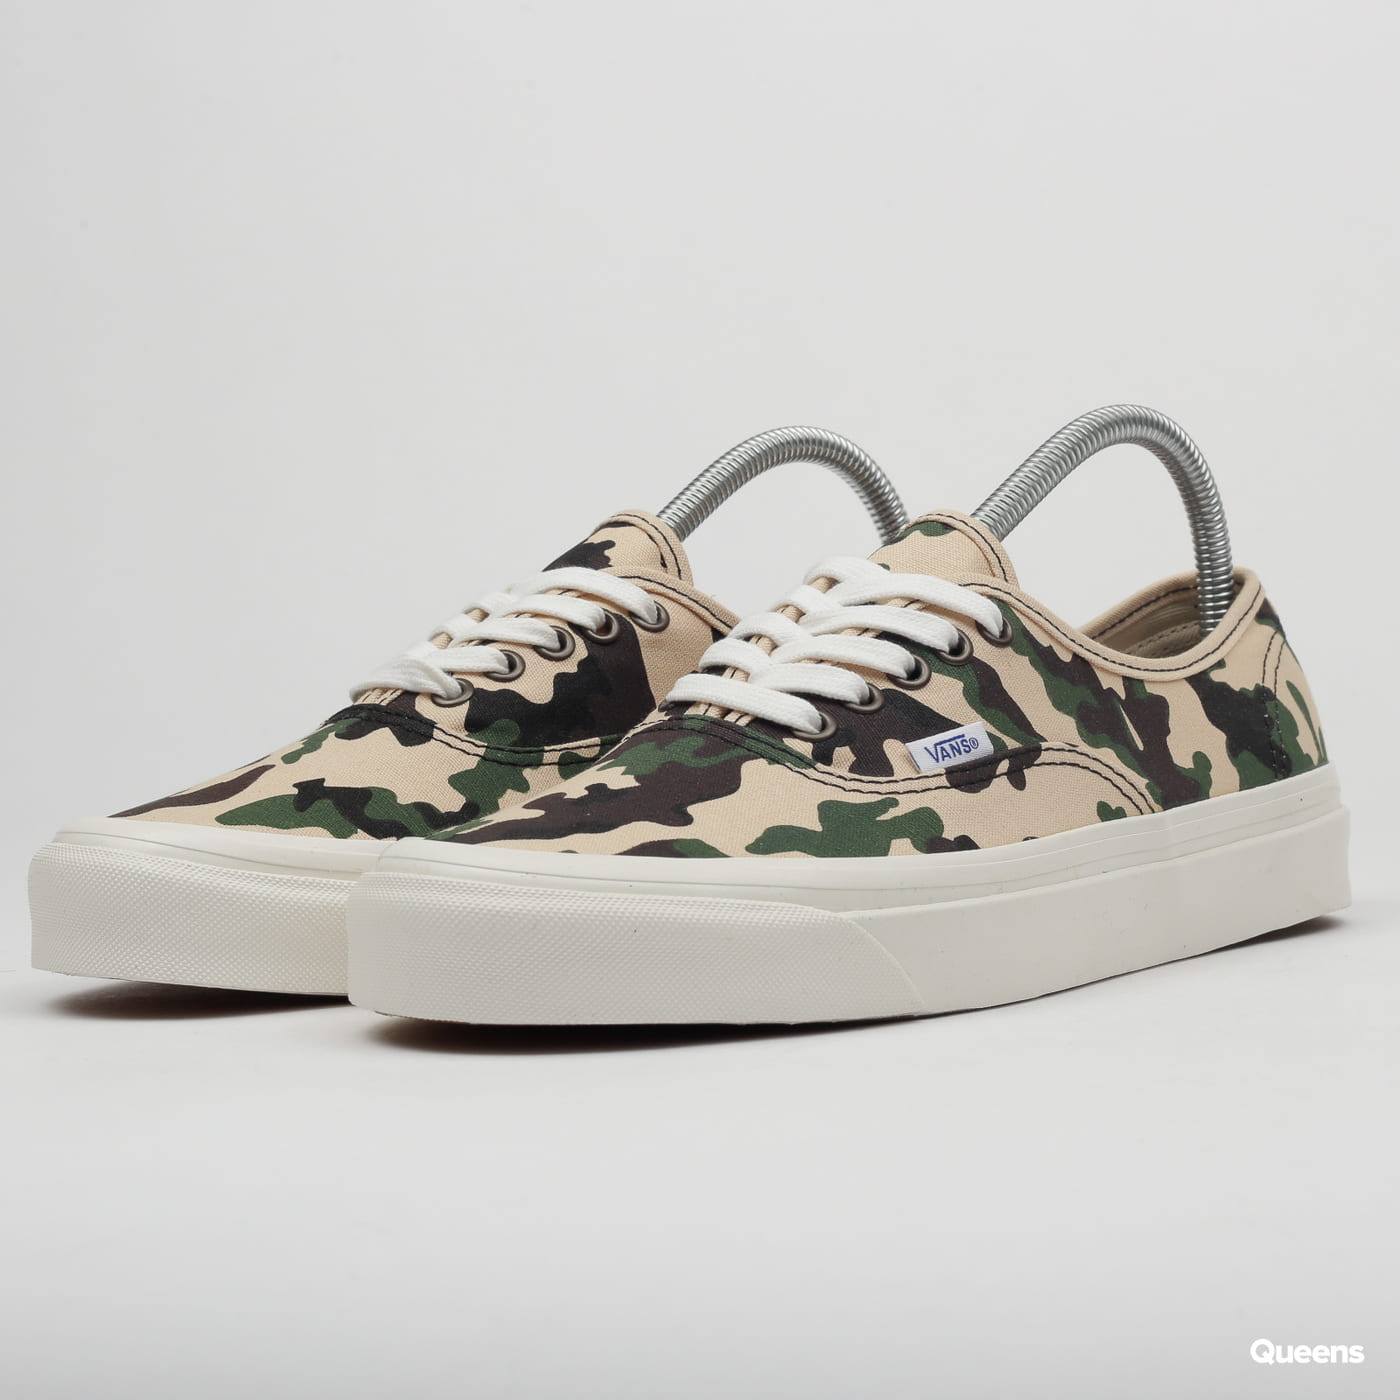 c81ea71e7fa87 Sneakers Vans Authentic 44 Dx (anaheim factory) og camo (VN0A38ENVKY) –  Queens 💚